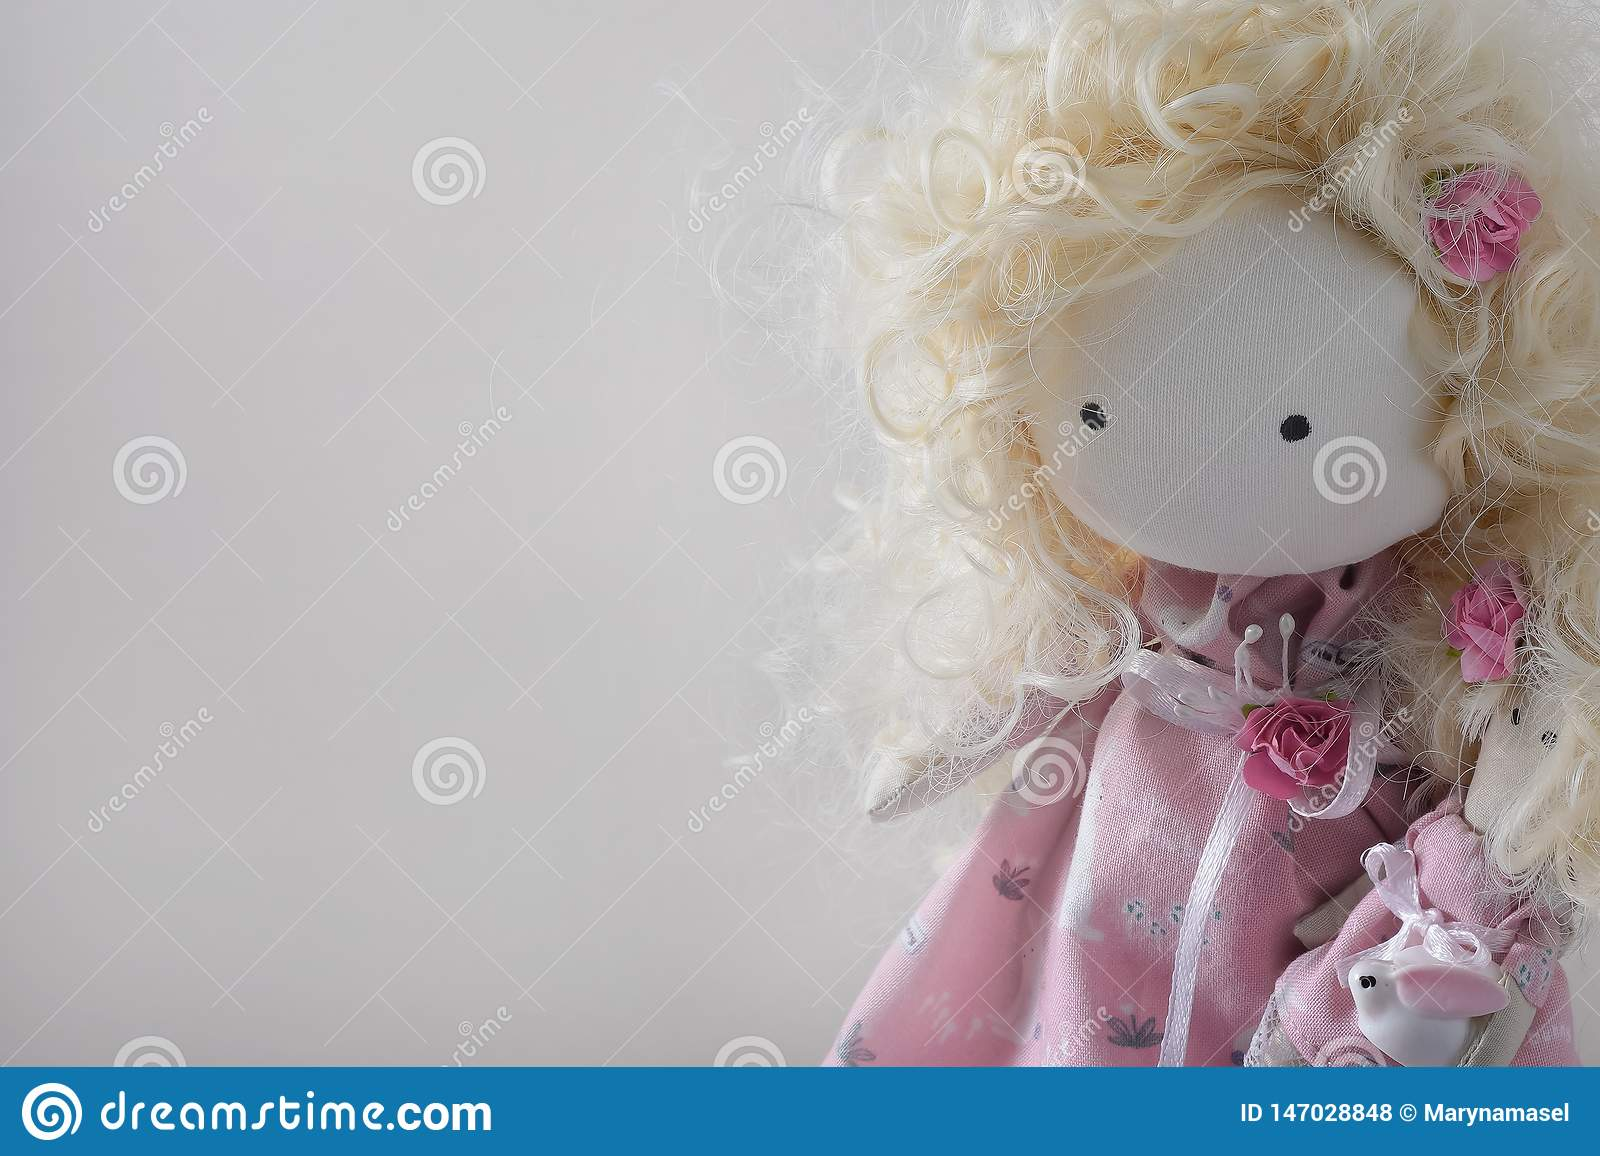 Cute handmade doll with blond curly-hair closeup with copyspace